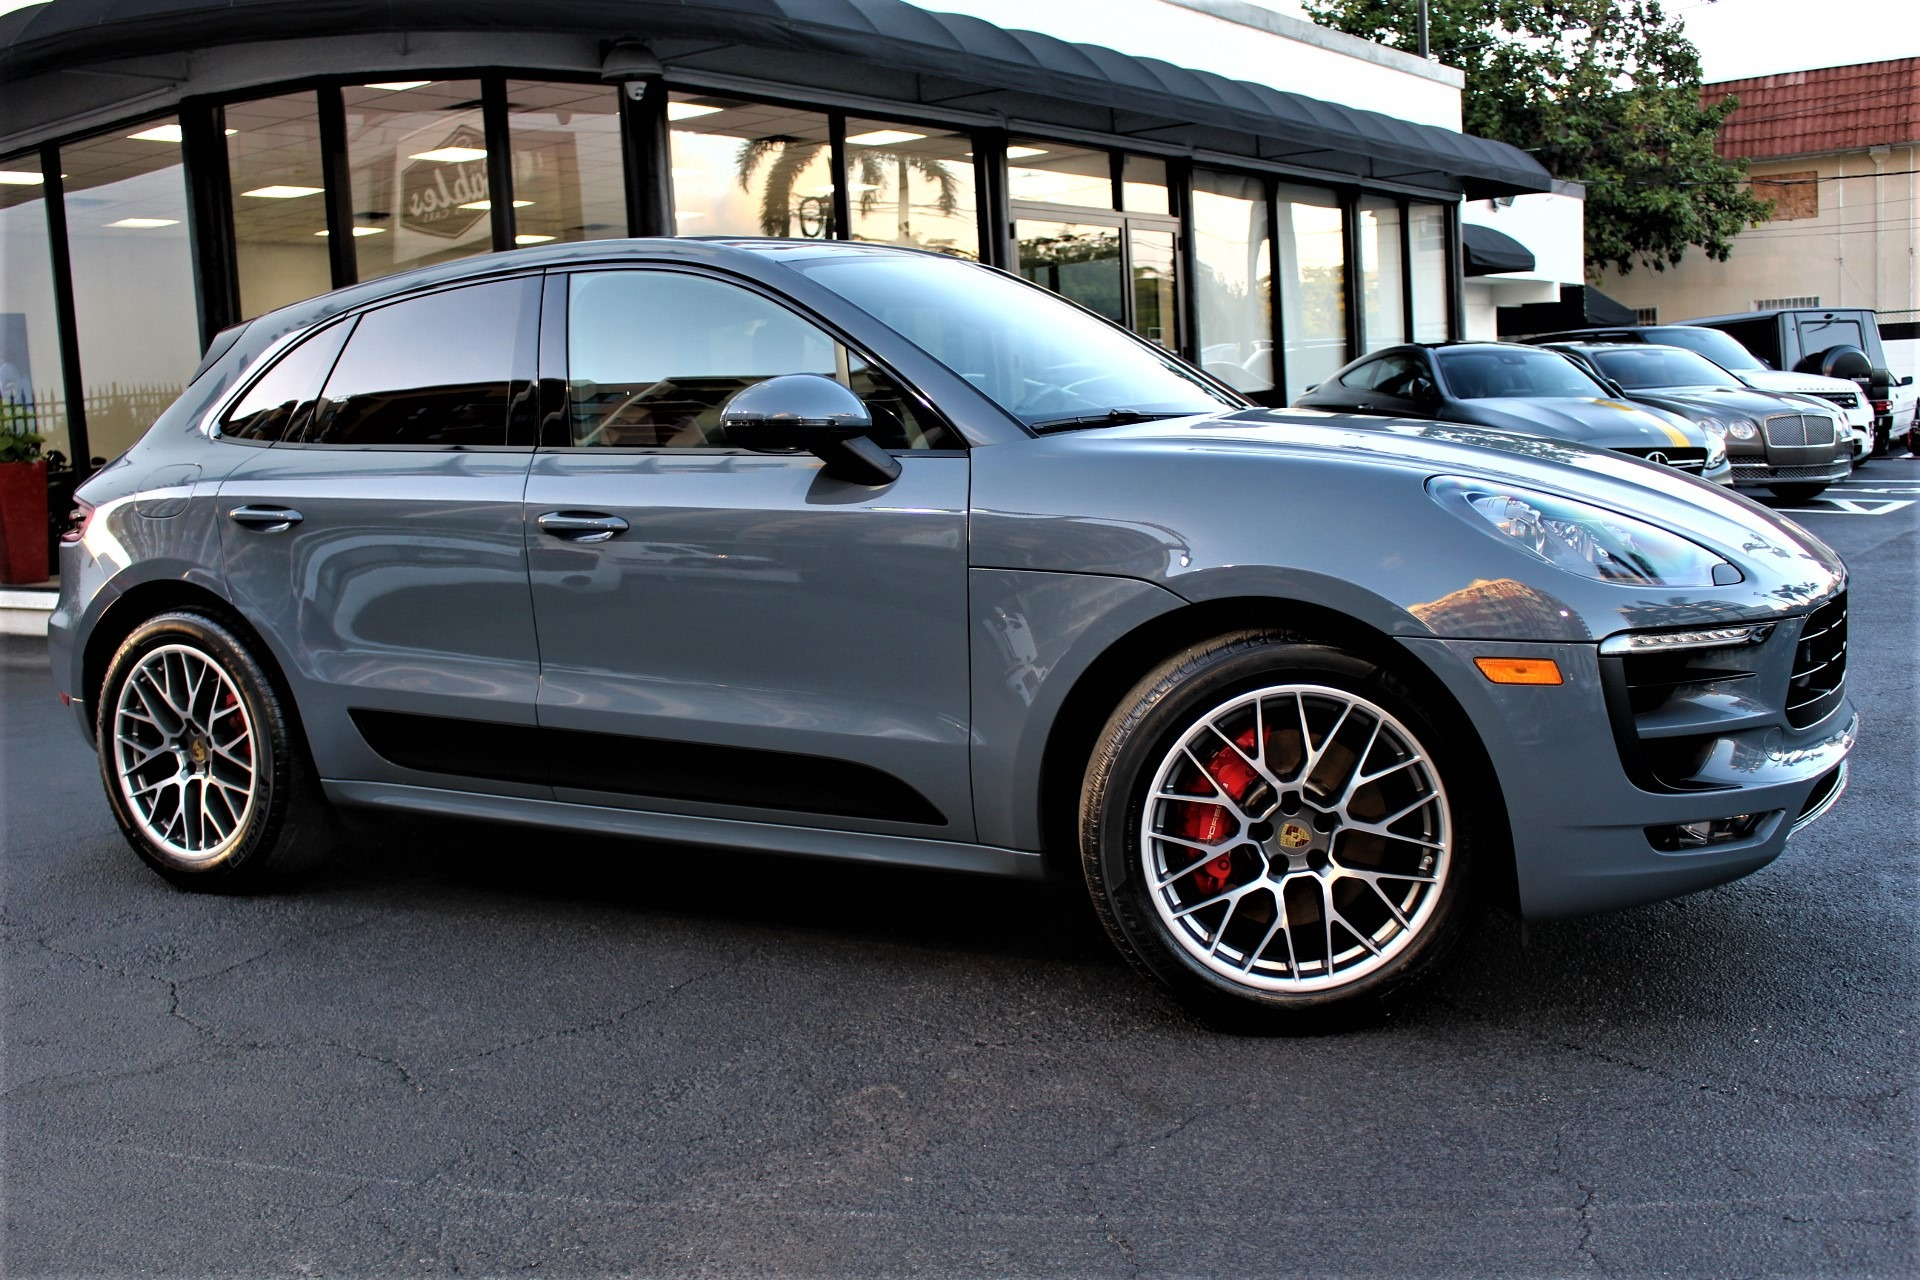 Used 2018 Porsche Macan GTS for sale $73,850 at The Gables Sports Cars in Miami FL 33146 2